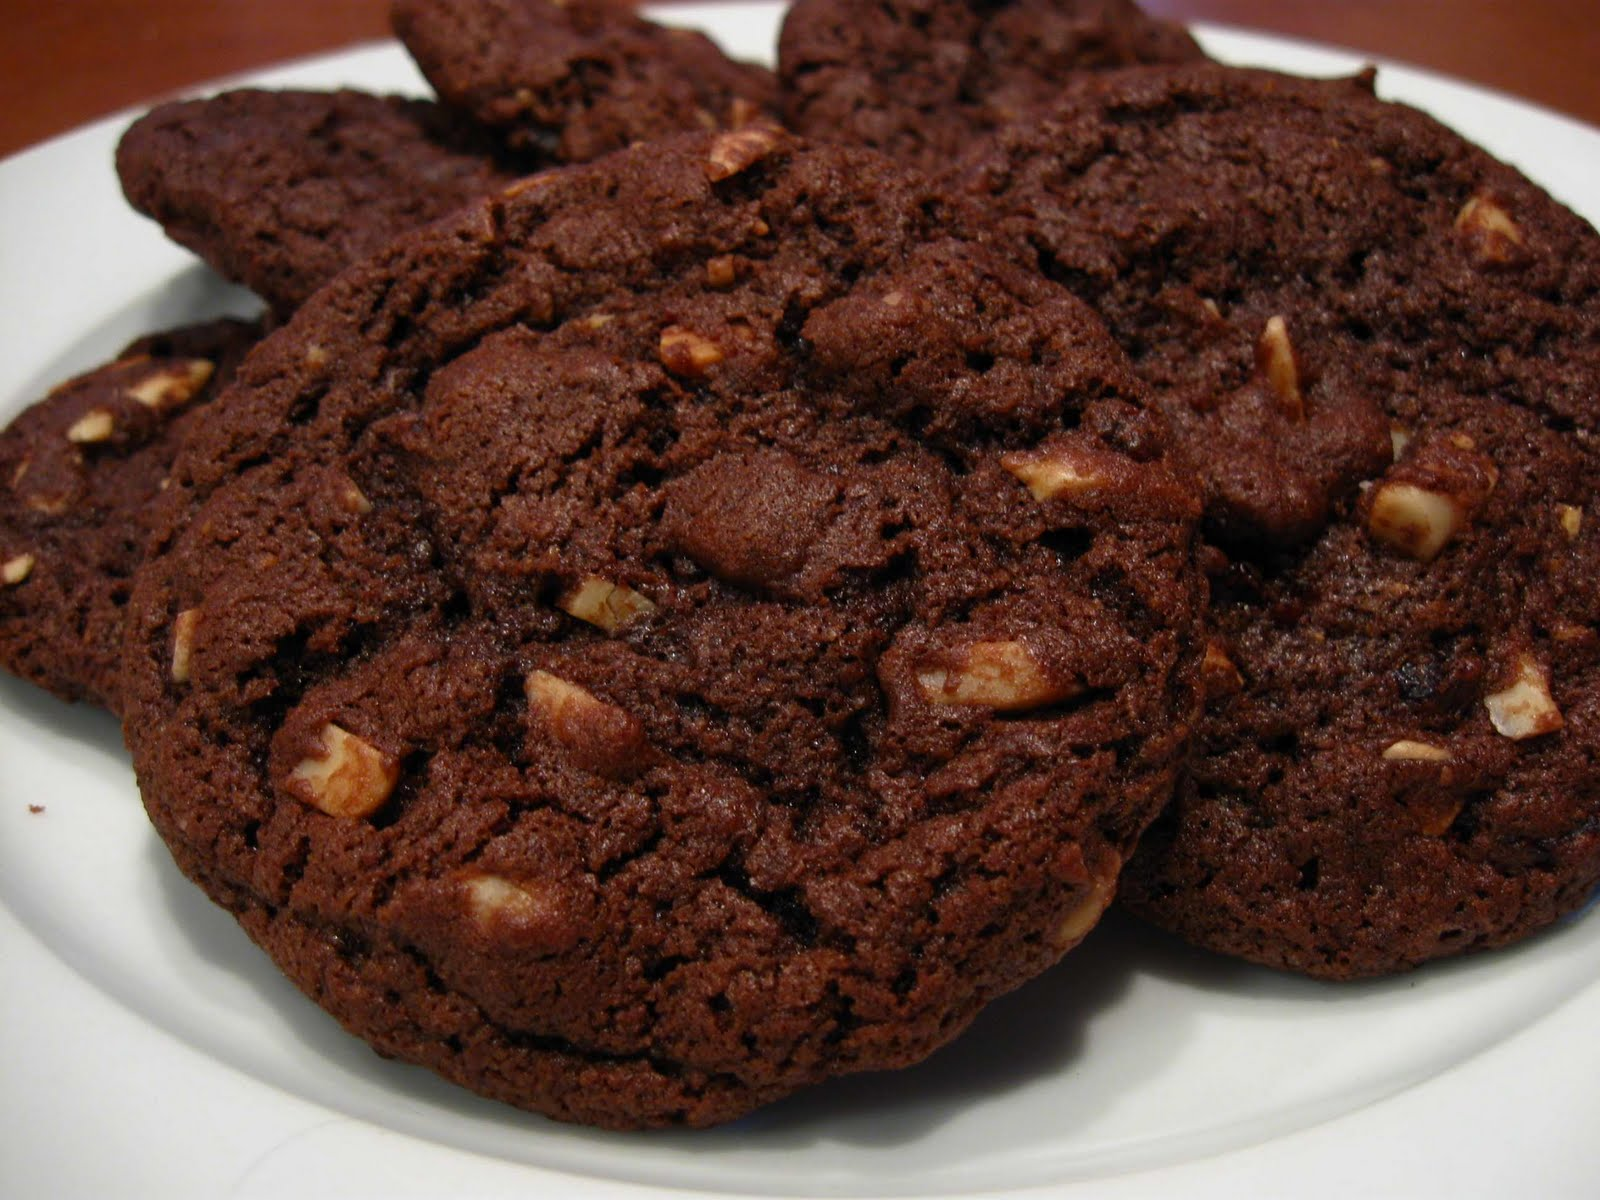 Cooking From Scratch: Chocolate Cherry Almond Cookies